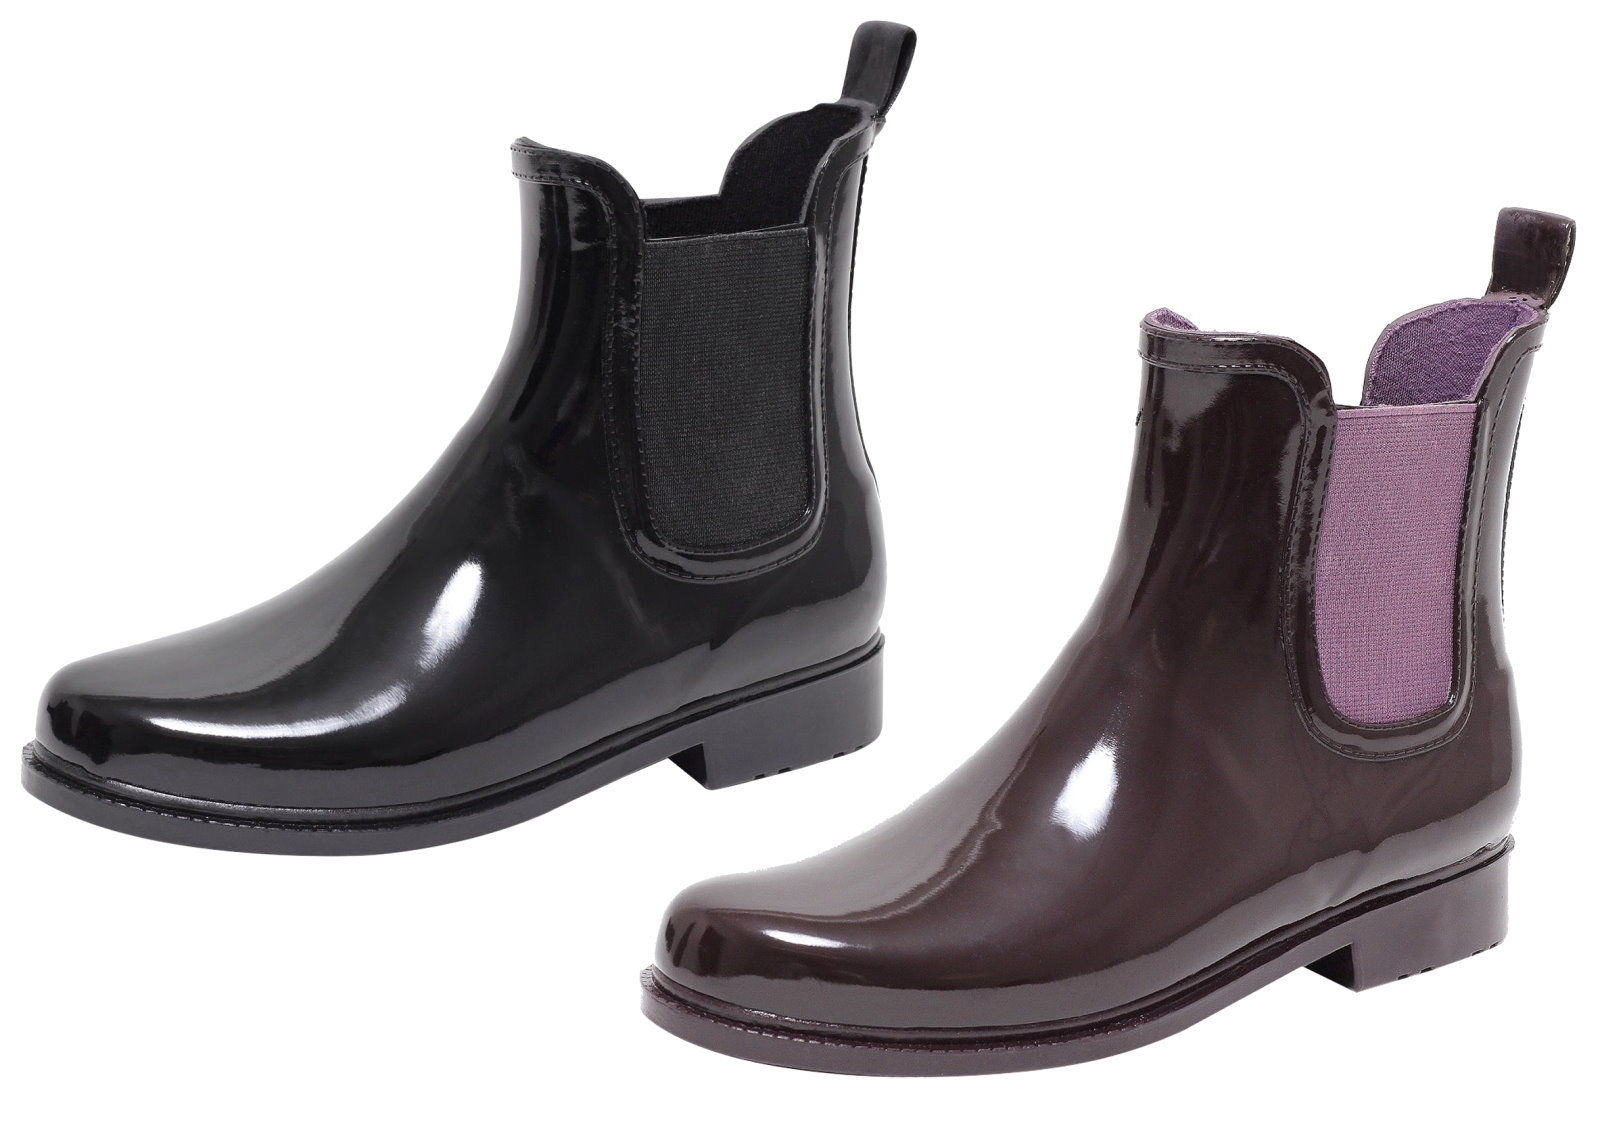 damen lack stiefeletten gummistiefel chelsea jelly boots schuhe regenstiefel kleidung damenschuhe. Black Bedroom Furniture Sets. Home Design Ideas